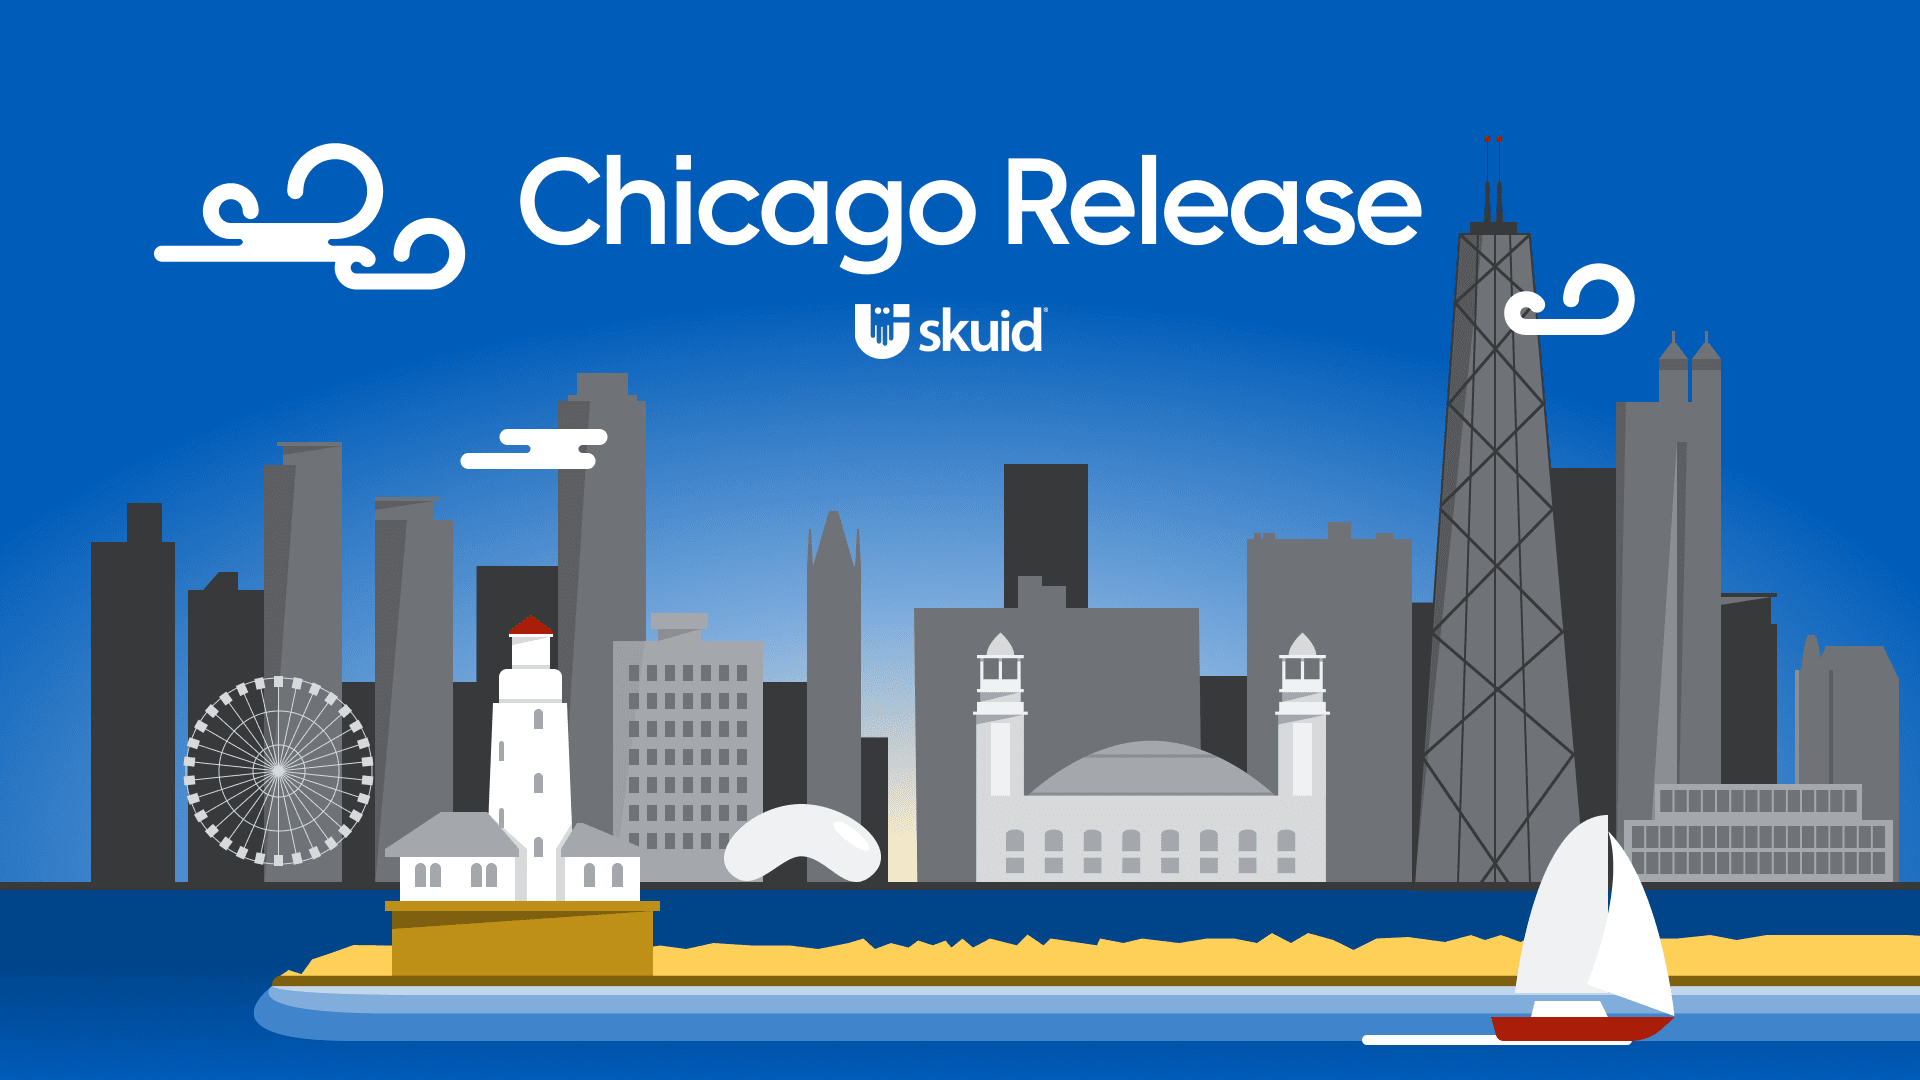 Introducing Skuid Chicago, for building apps with even less code and better user experience.